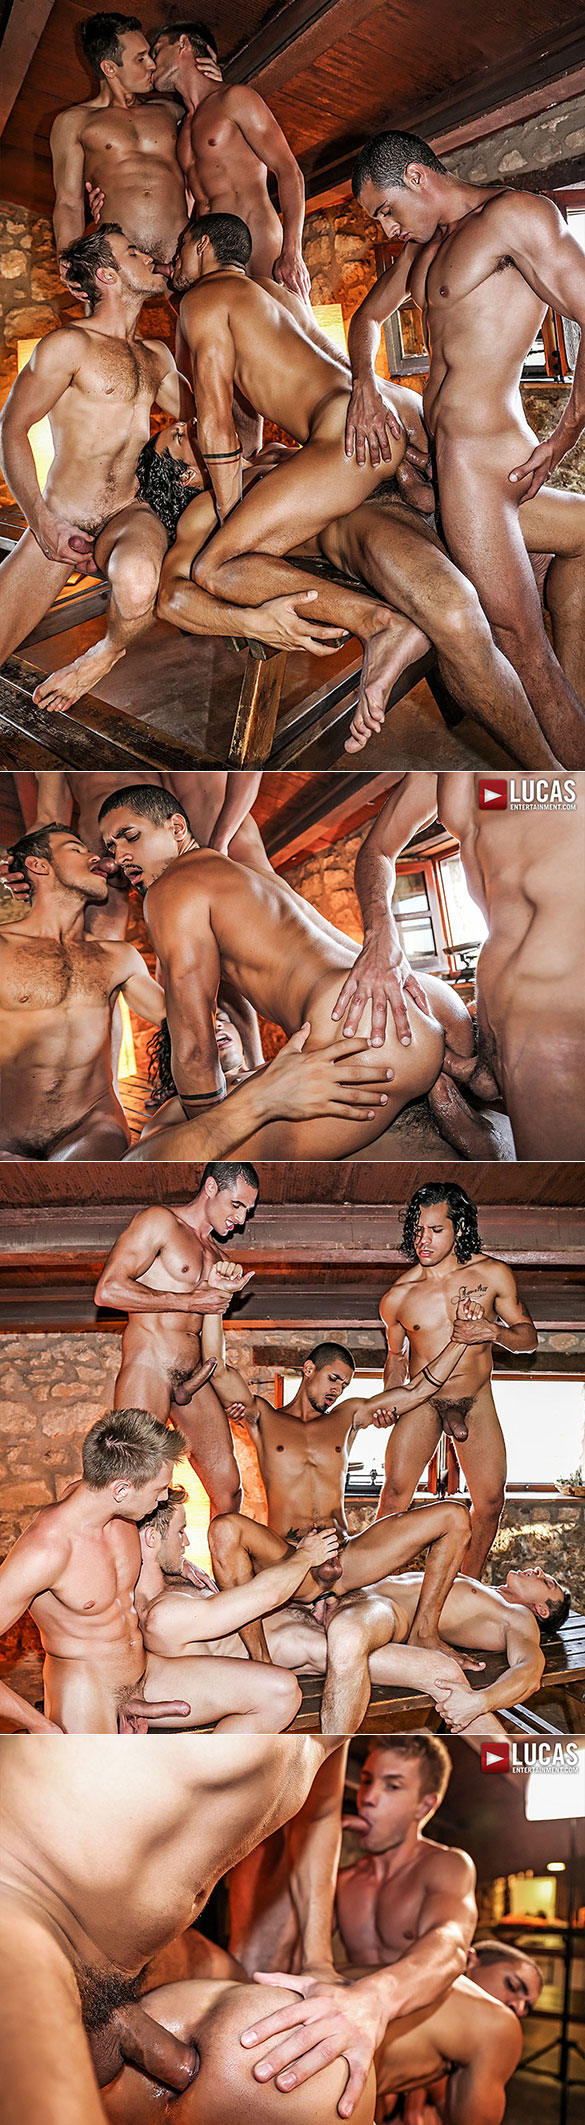 Lucas Entertainment: Ibrahim Moreno's bareback double-penetration orgy with Alejandro Castillo, Alex Kof, Bogdan Gromov, Javi Velaro and Marq Daniels